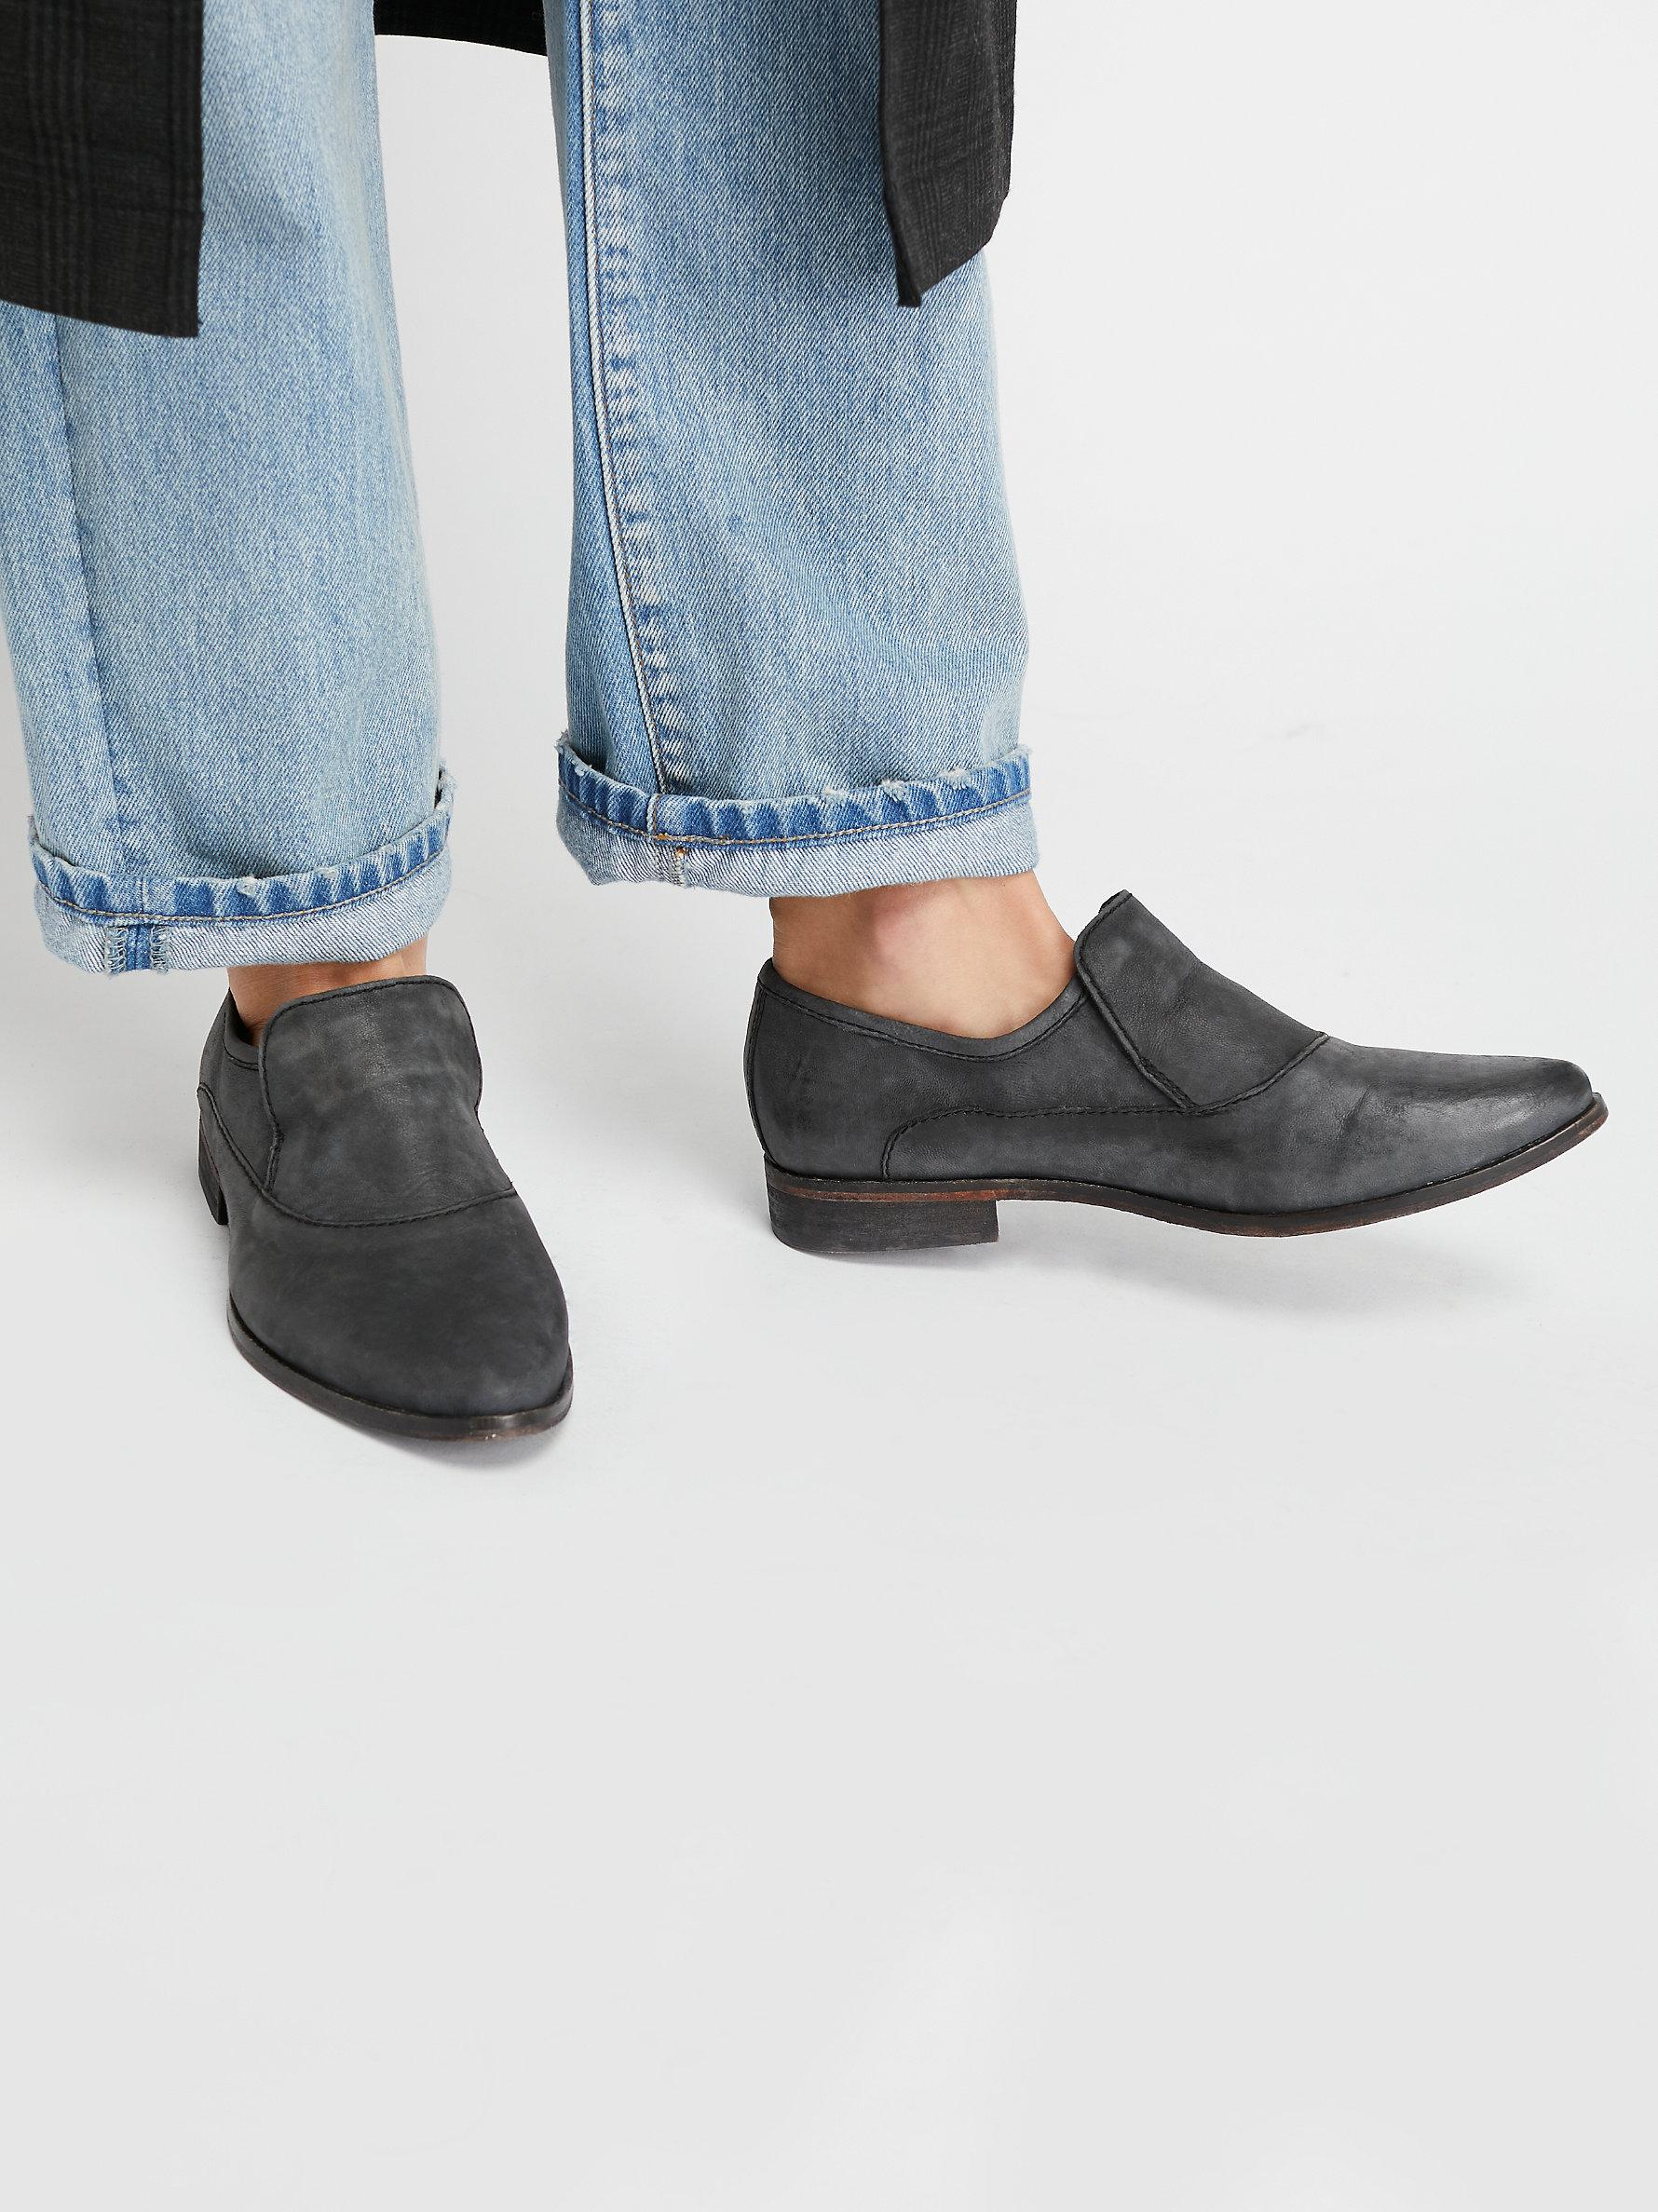 Free People Women's Brady Loafer